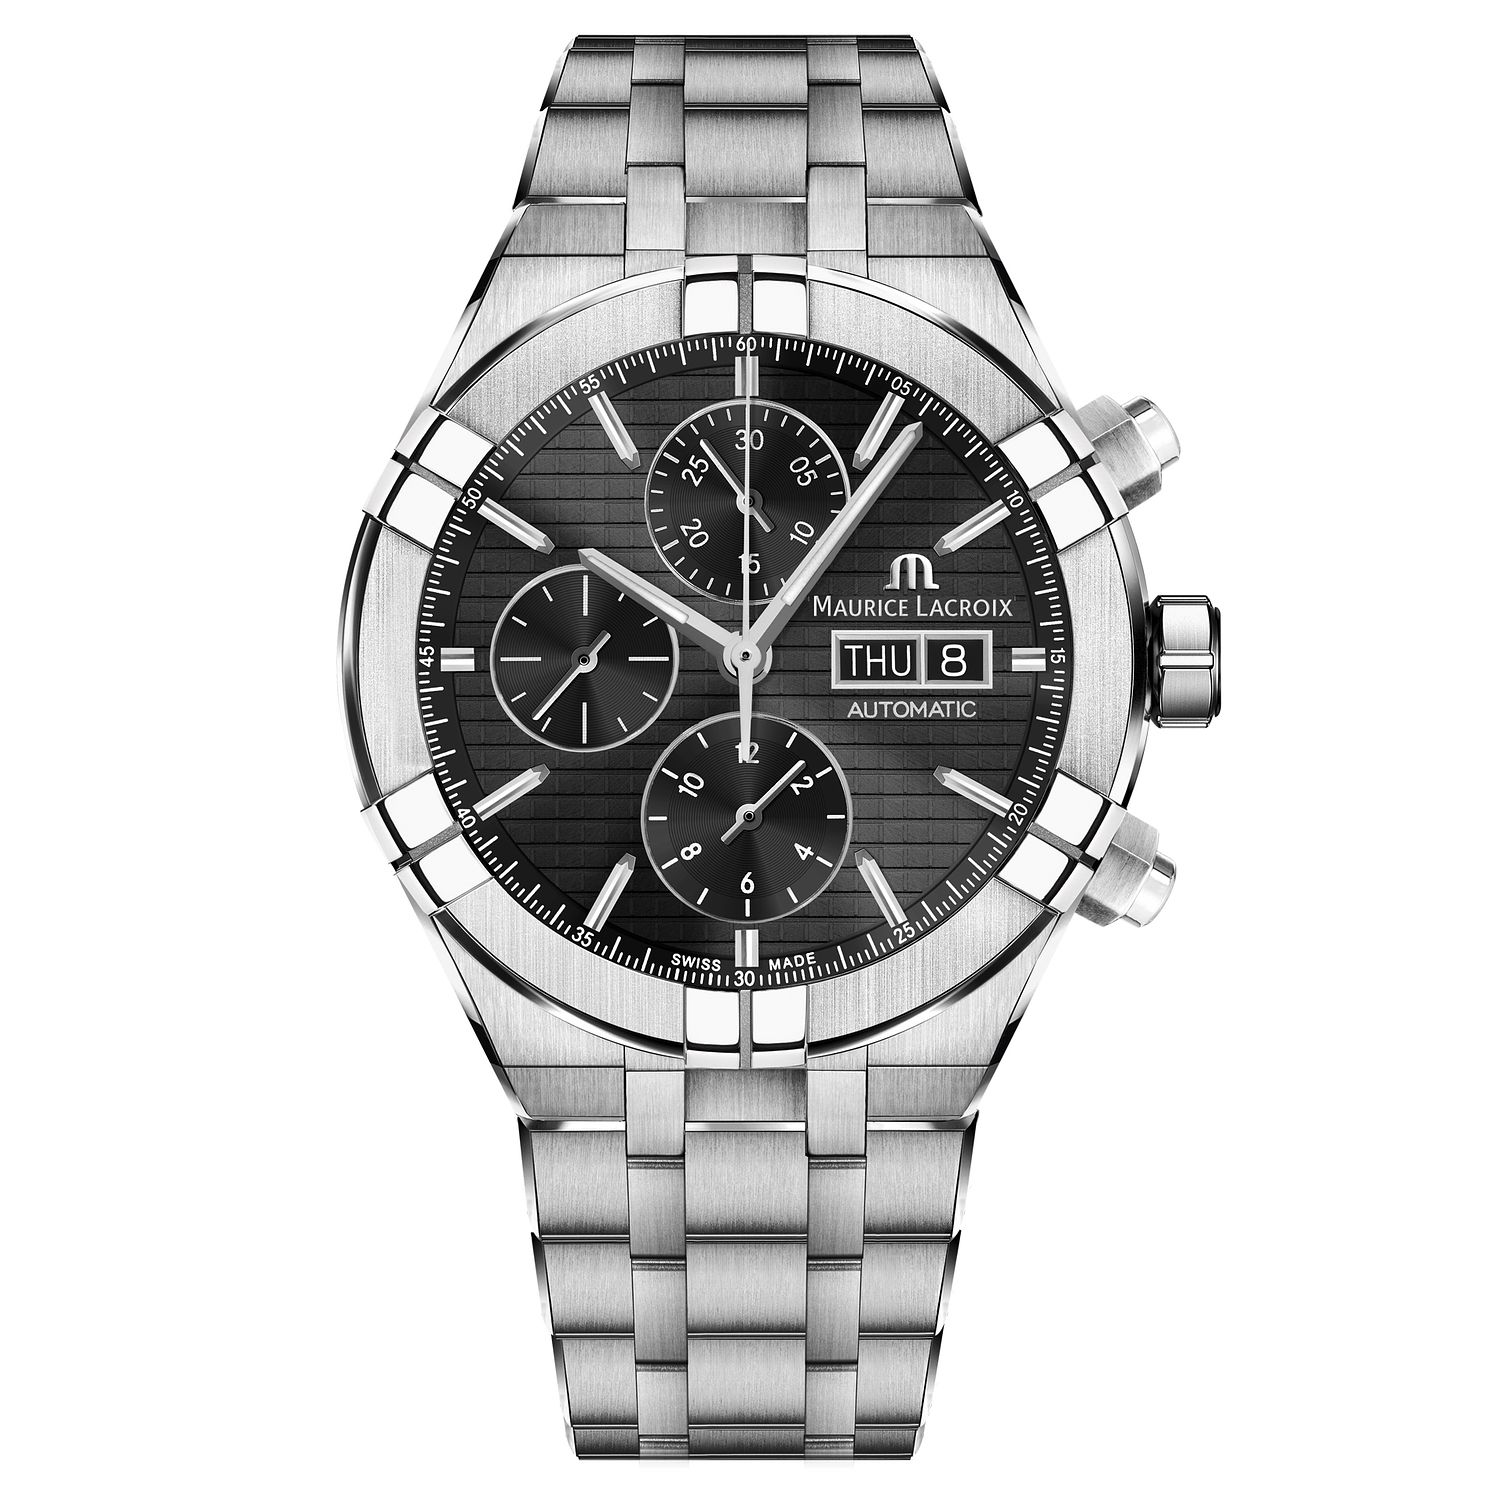 Maurice Lacroix Aikon Men's Black Chronograph Watch - Product number 9394516